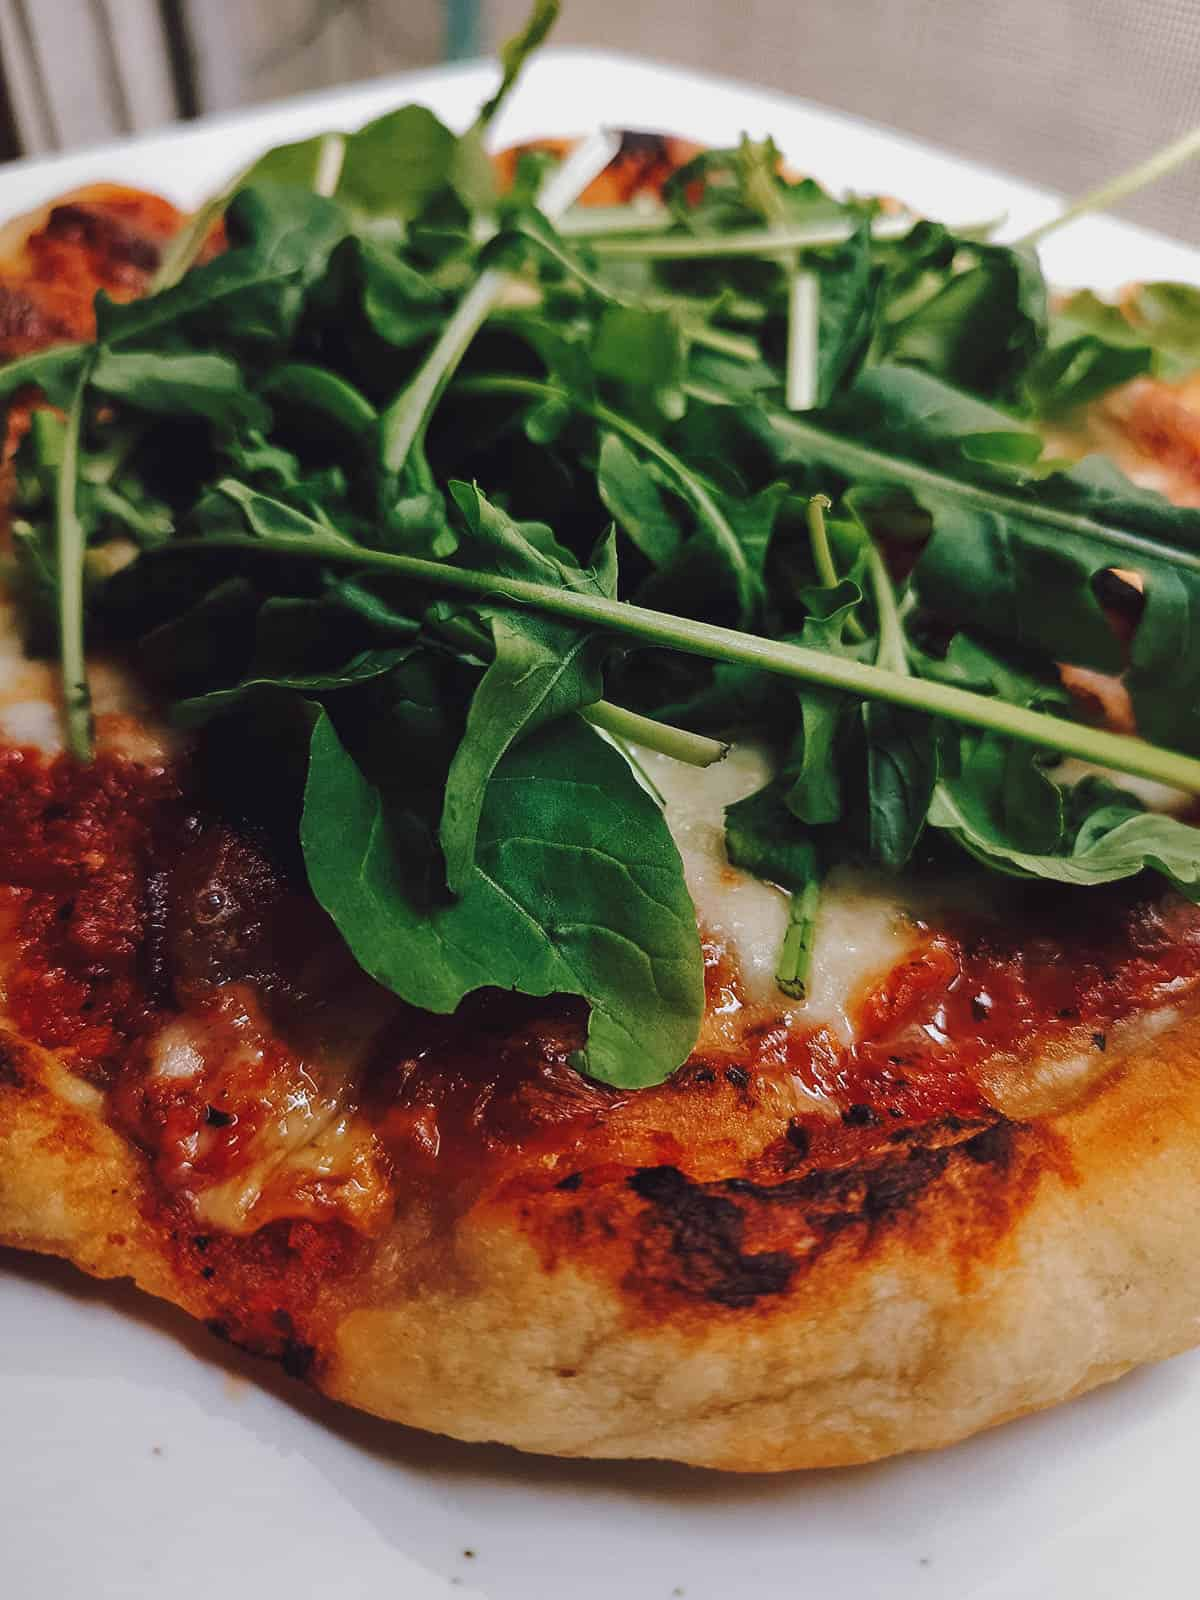 Neapolitan pizza topped with arugula